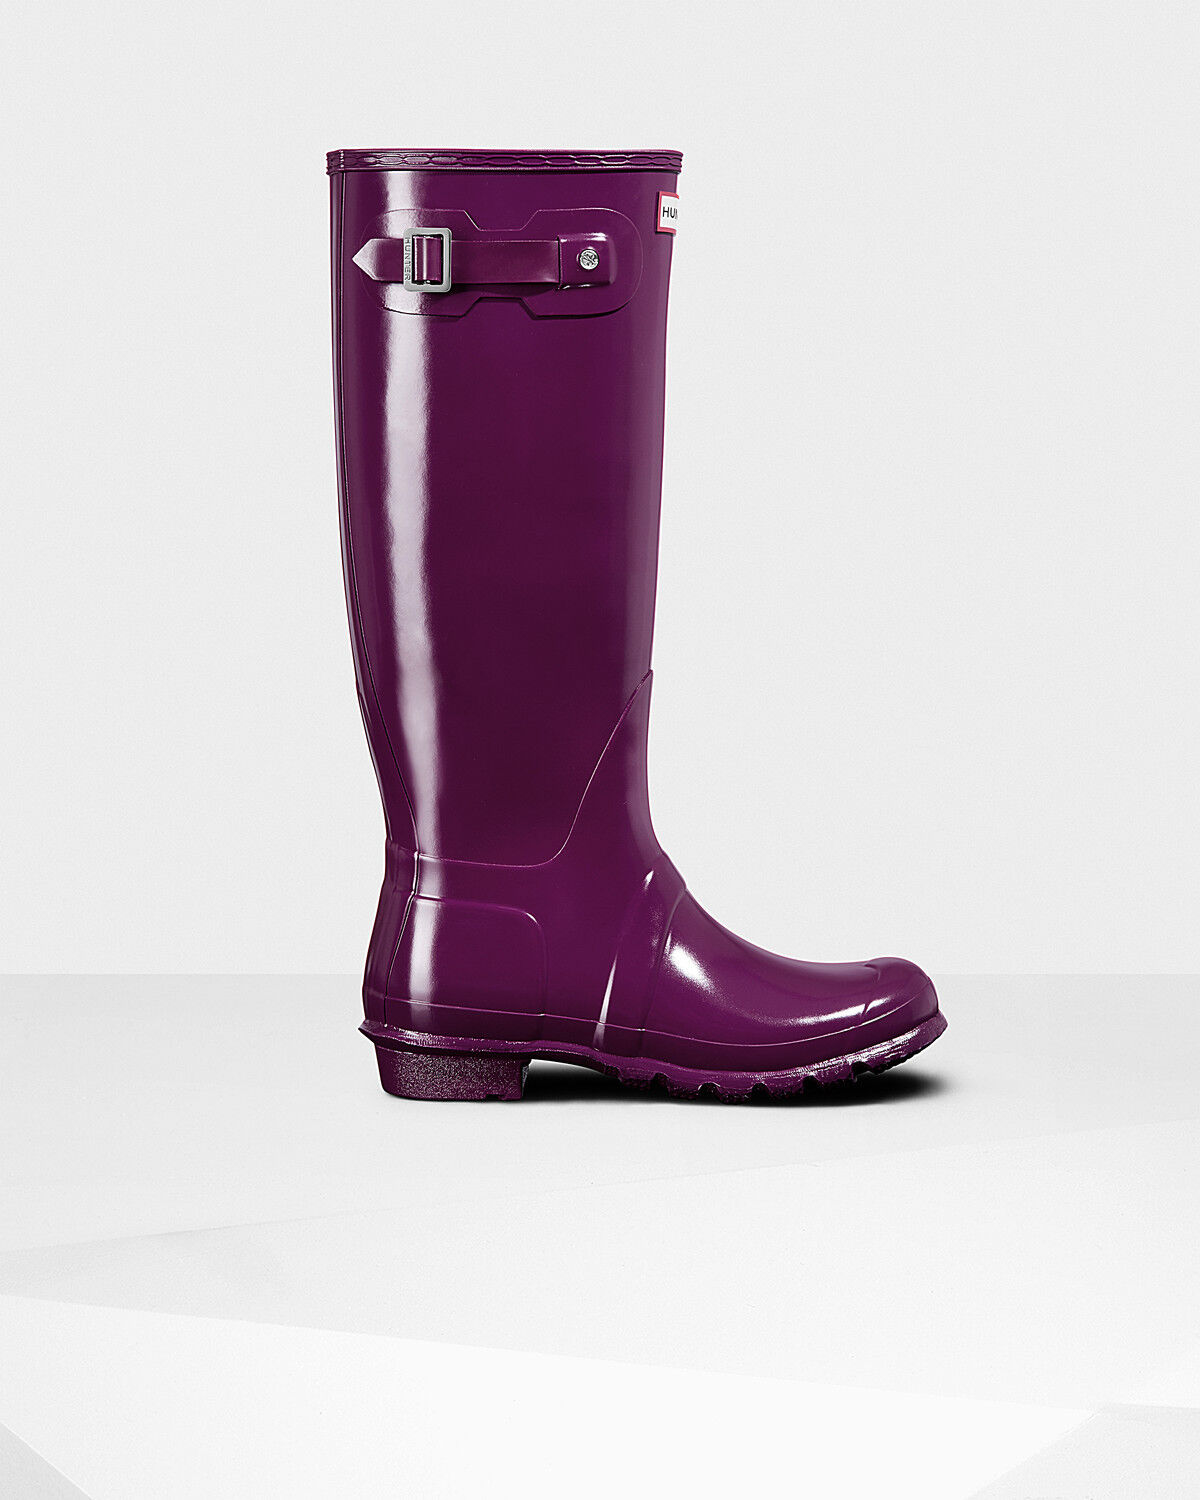 Recortes de de precios estacionales, beneficios de Recortes descuento Hunter Original Tall Gloss Violeta Wellies UK Size 3-8 3cfc0a